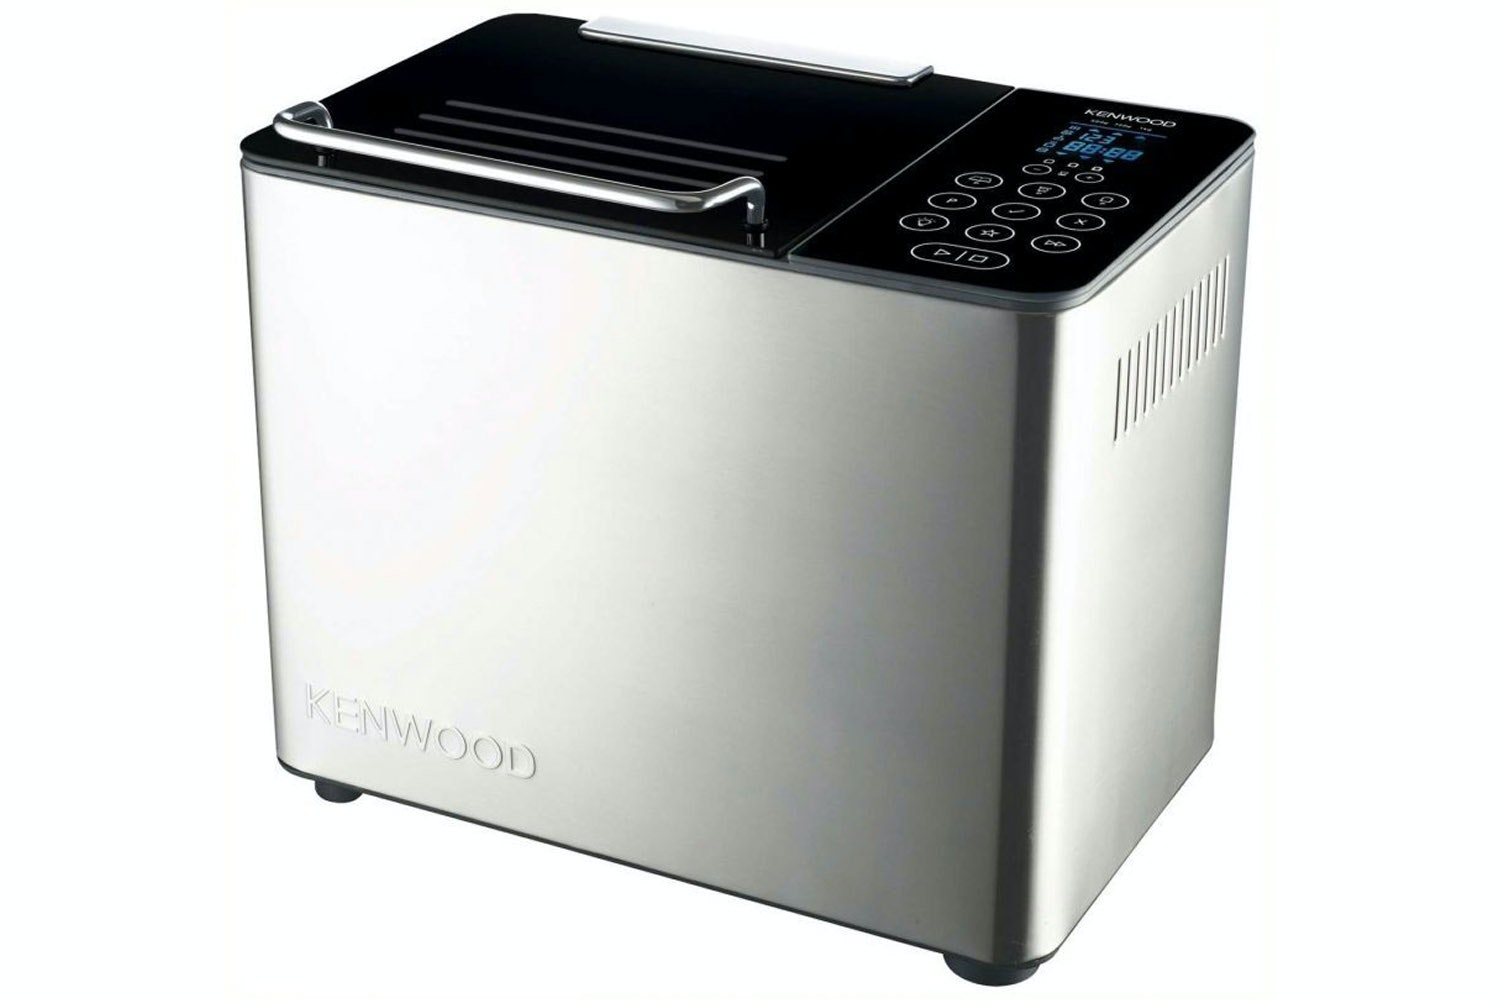 Kenwood Bread Maker | BM450| Stainless Steel